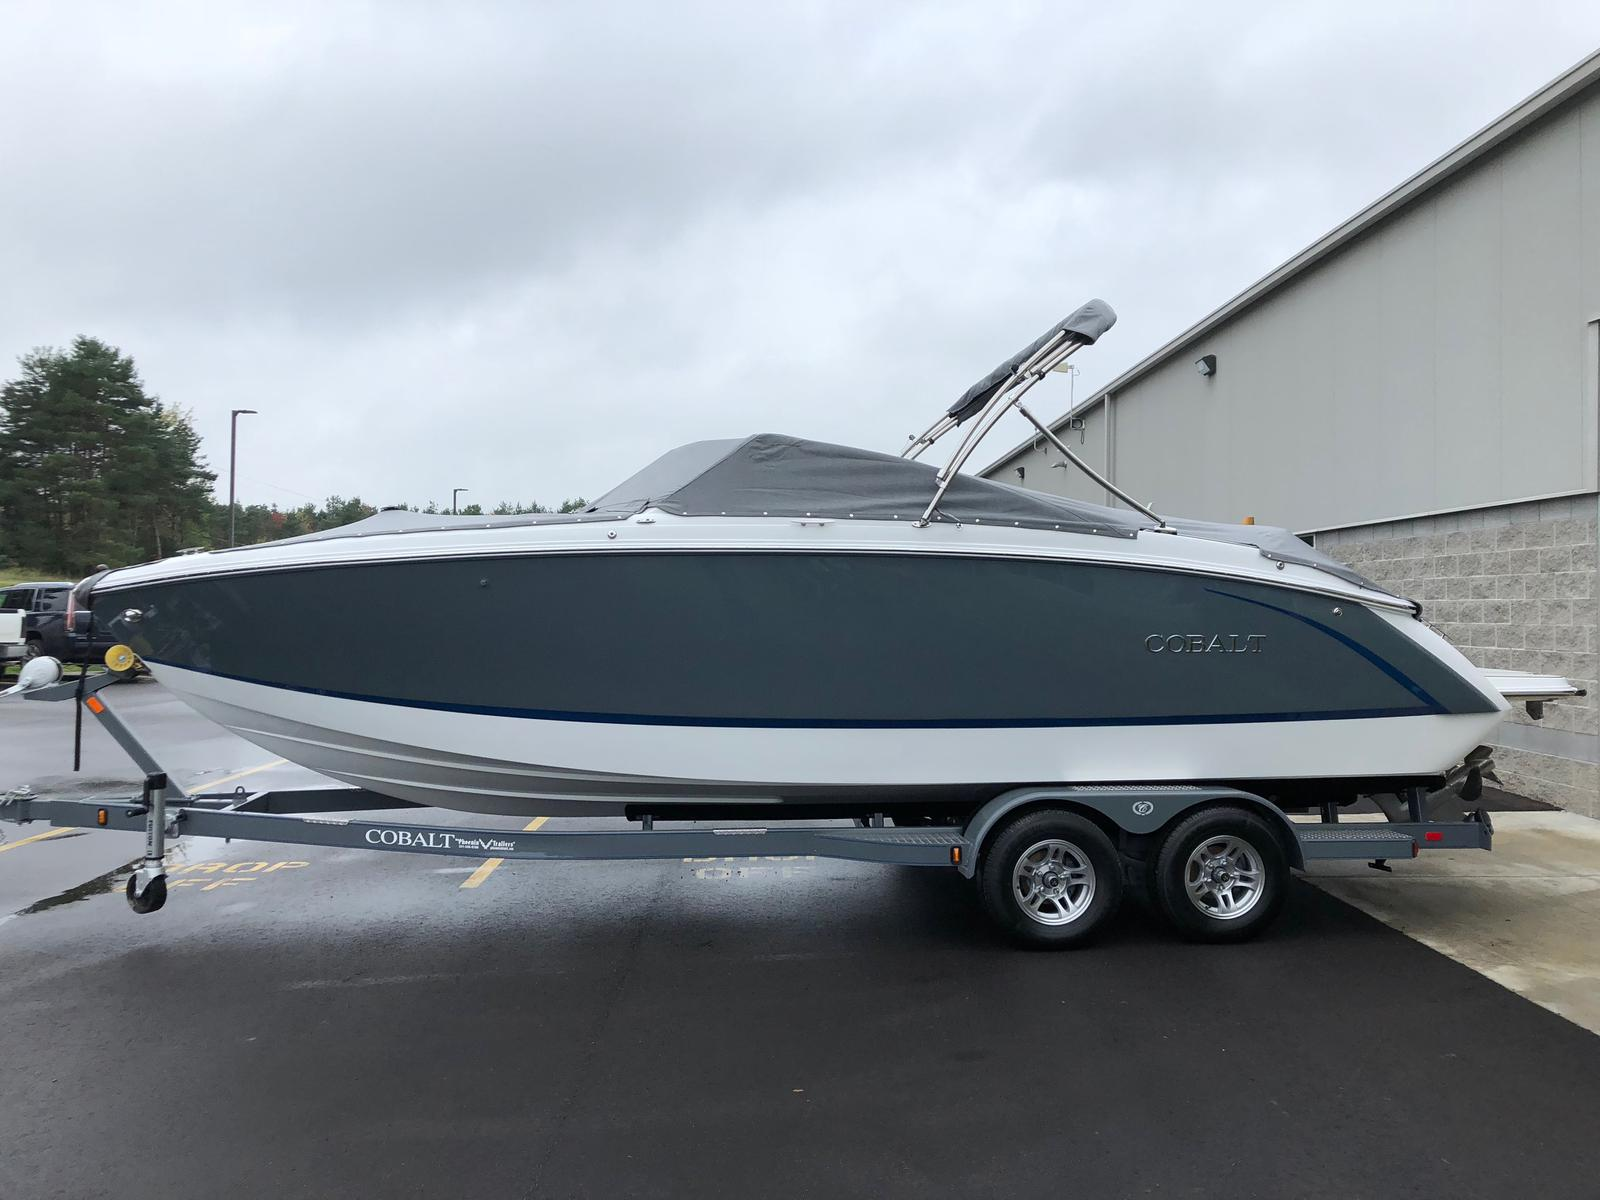 2019 Cobalt R5 for sale in Fenton, MI | Action Water Sports